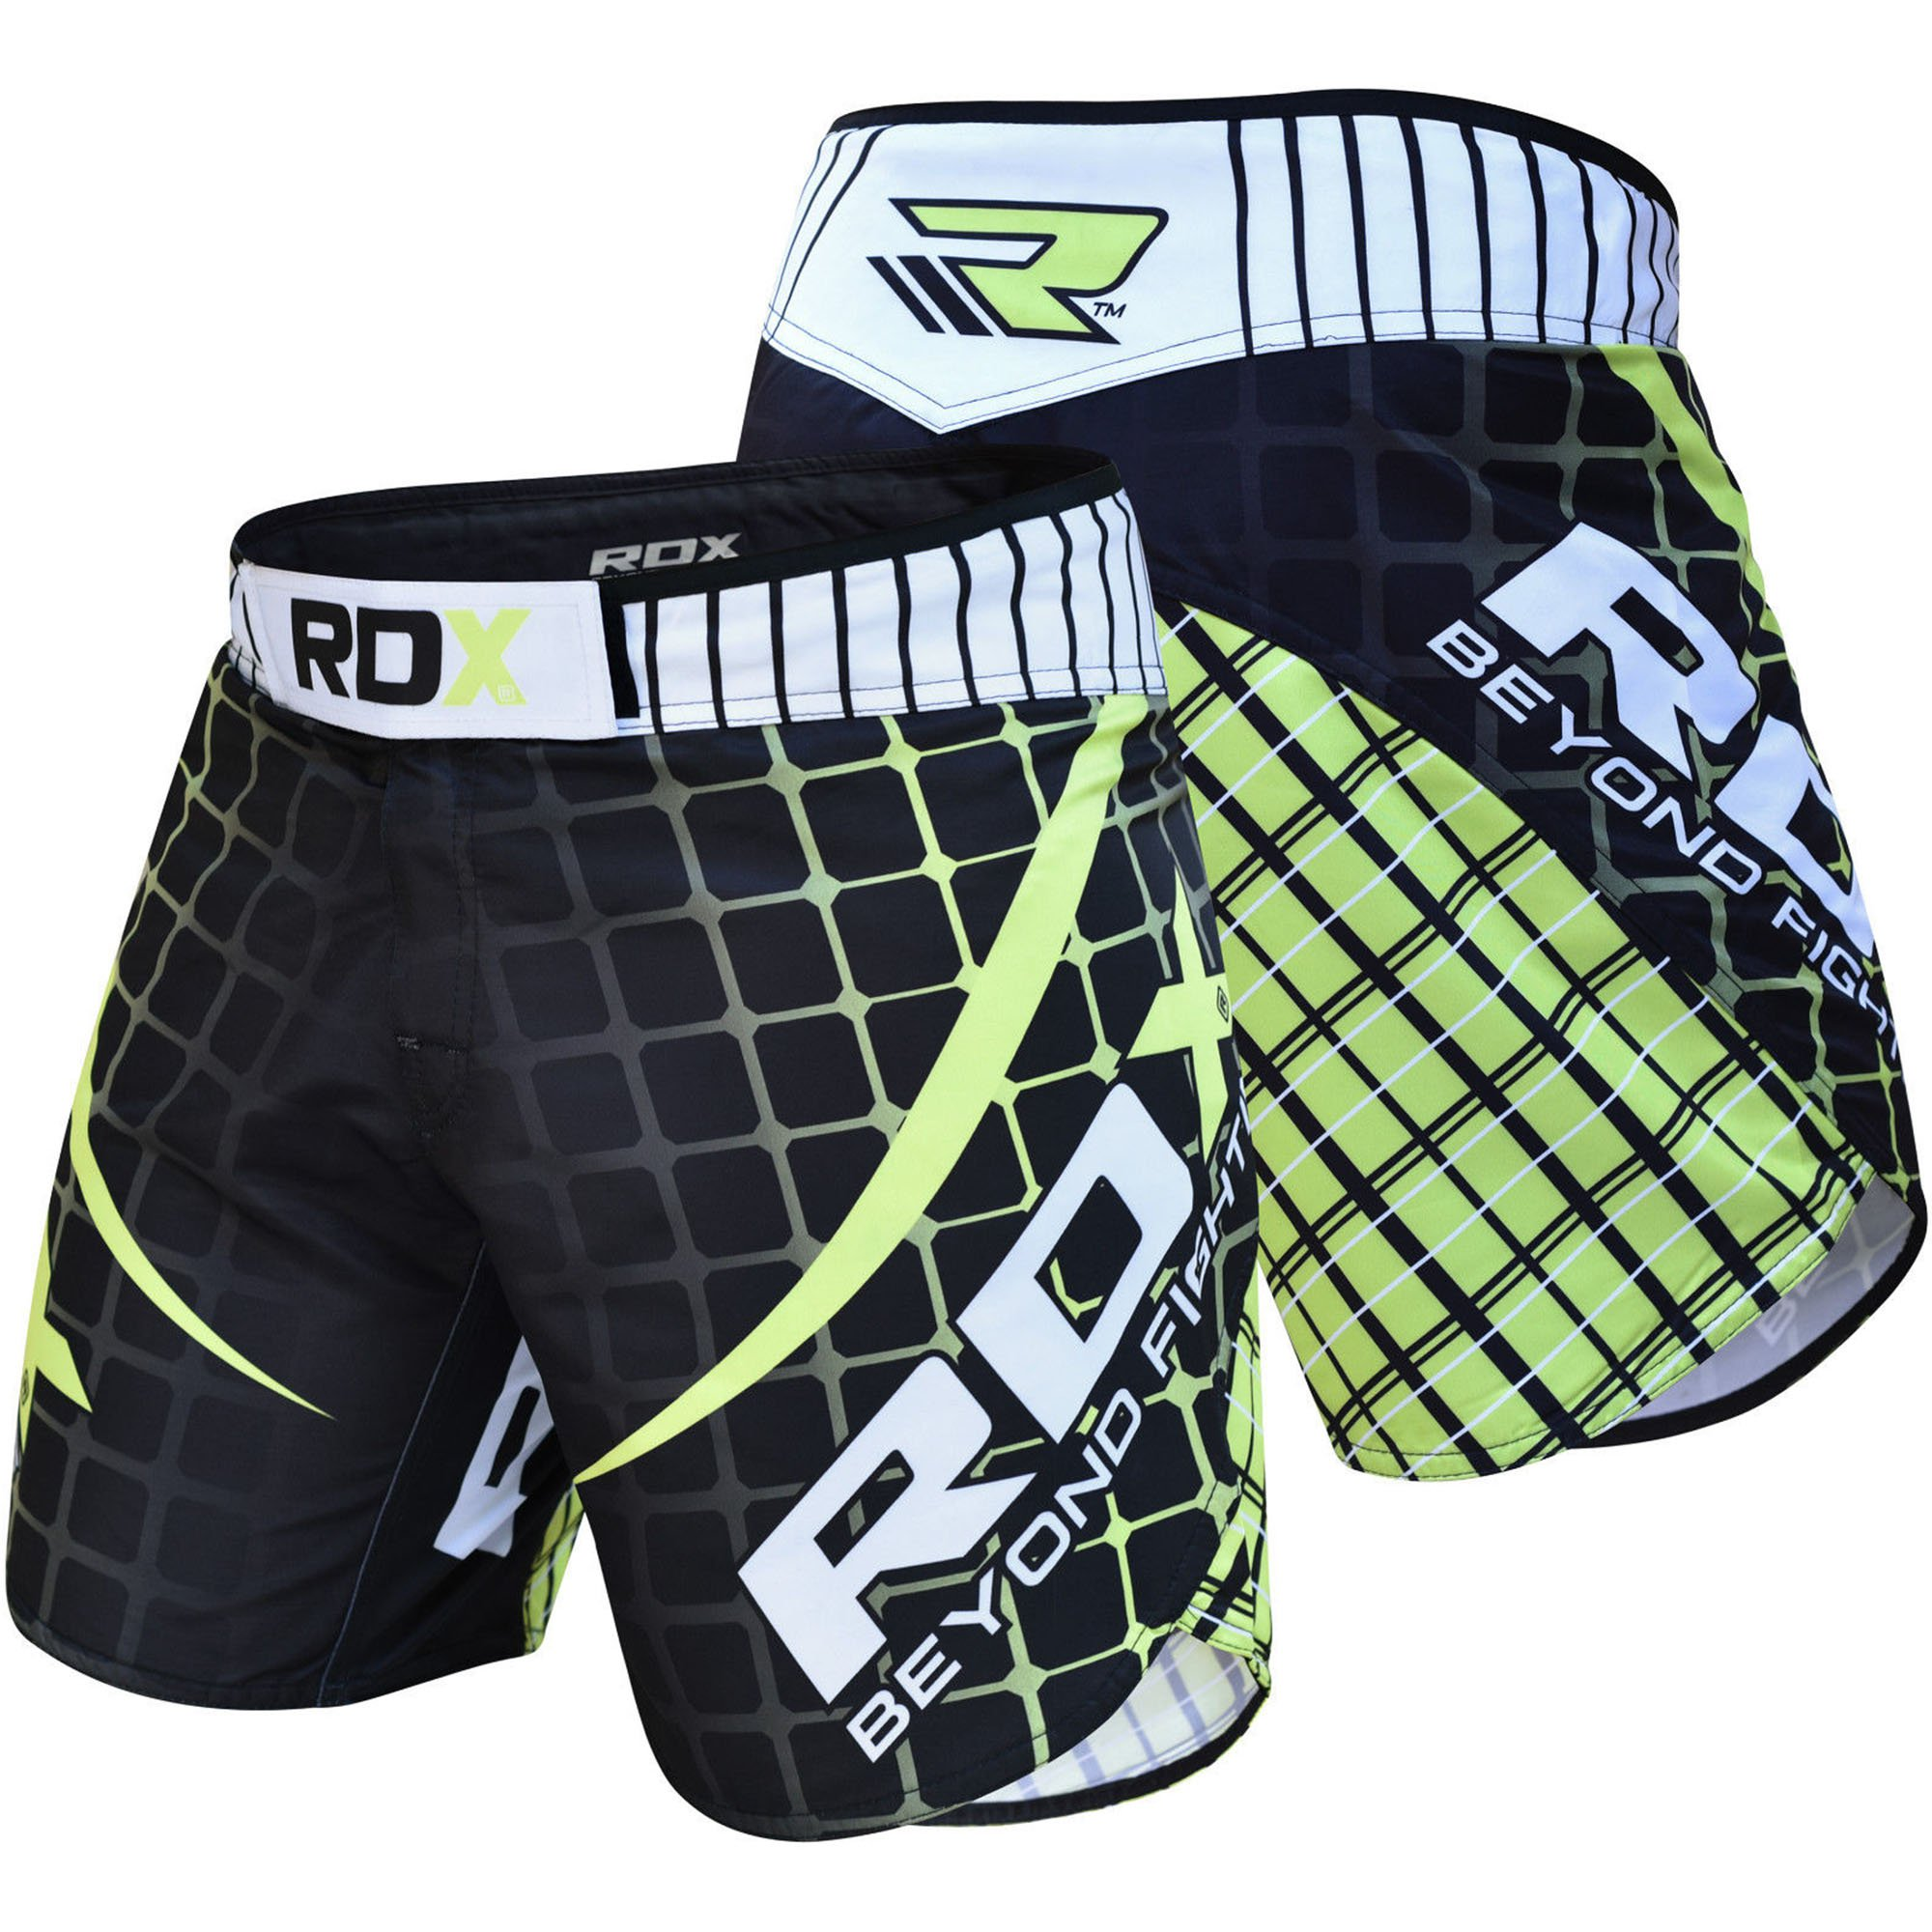 RDX R2 MMA Stretch Shorts, Green, 2X-Large